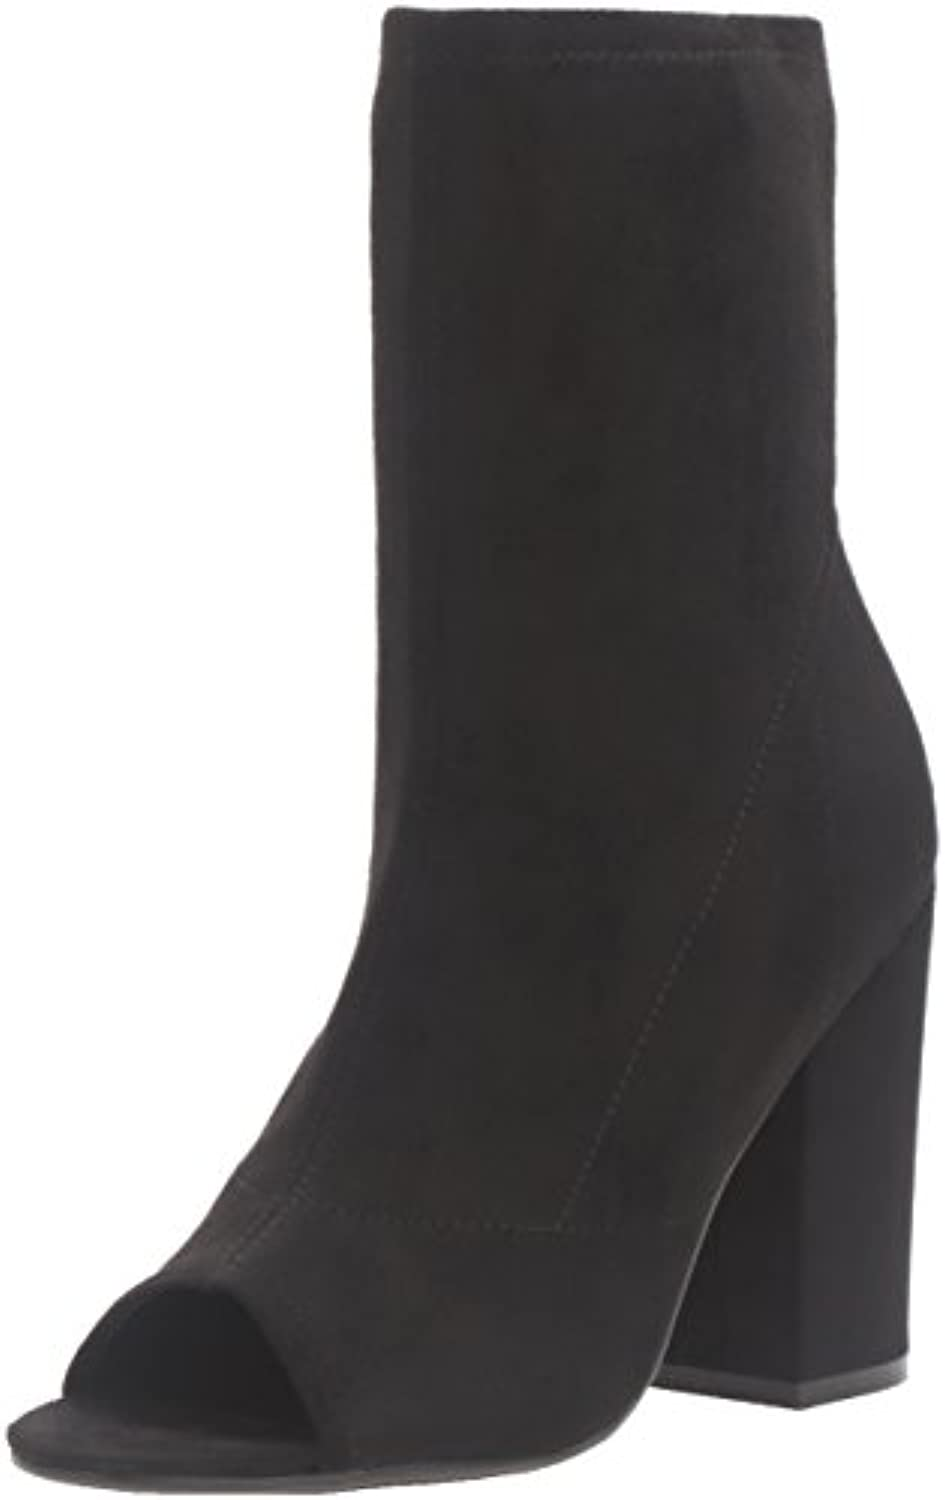 Guess Women's Galyna2 Ankle Bootie Black 6 M US